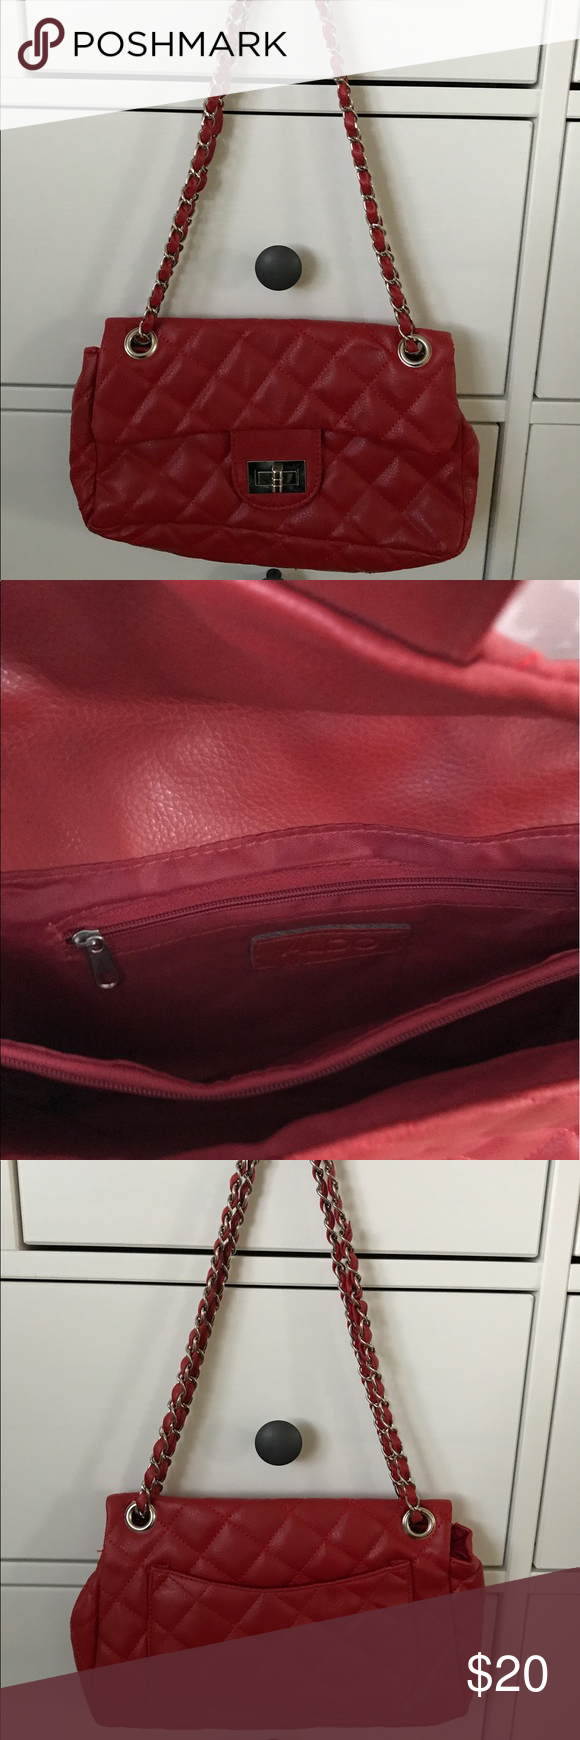 Red Aldo small purse. EUC. Red Aldo small purse. Used once. Excellent used condition. Aldo Bags Mini Bags